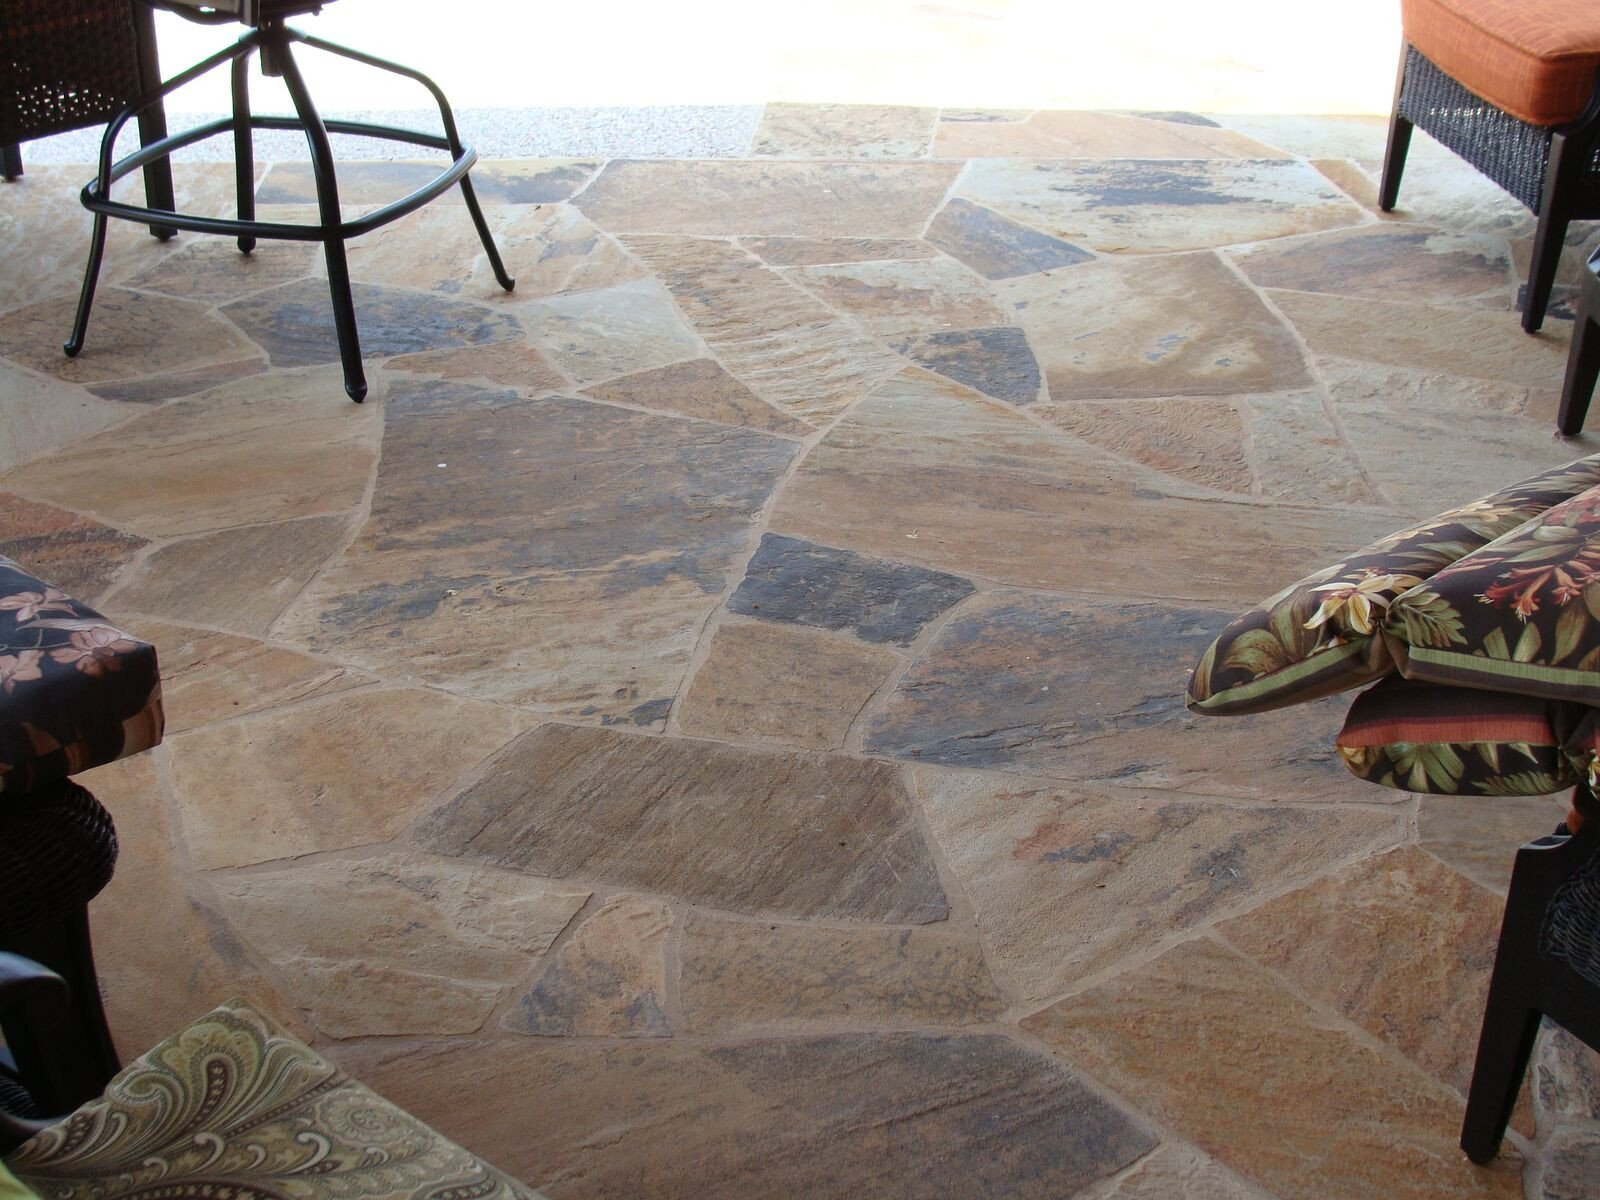 Flagstone pavers you can looking holland pavers you can looking rock pavers patio you can looking stamped concrete pavers